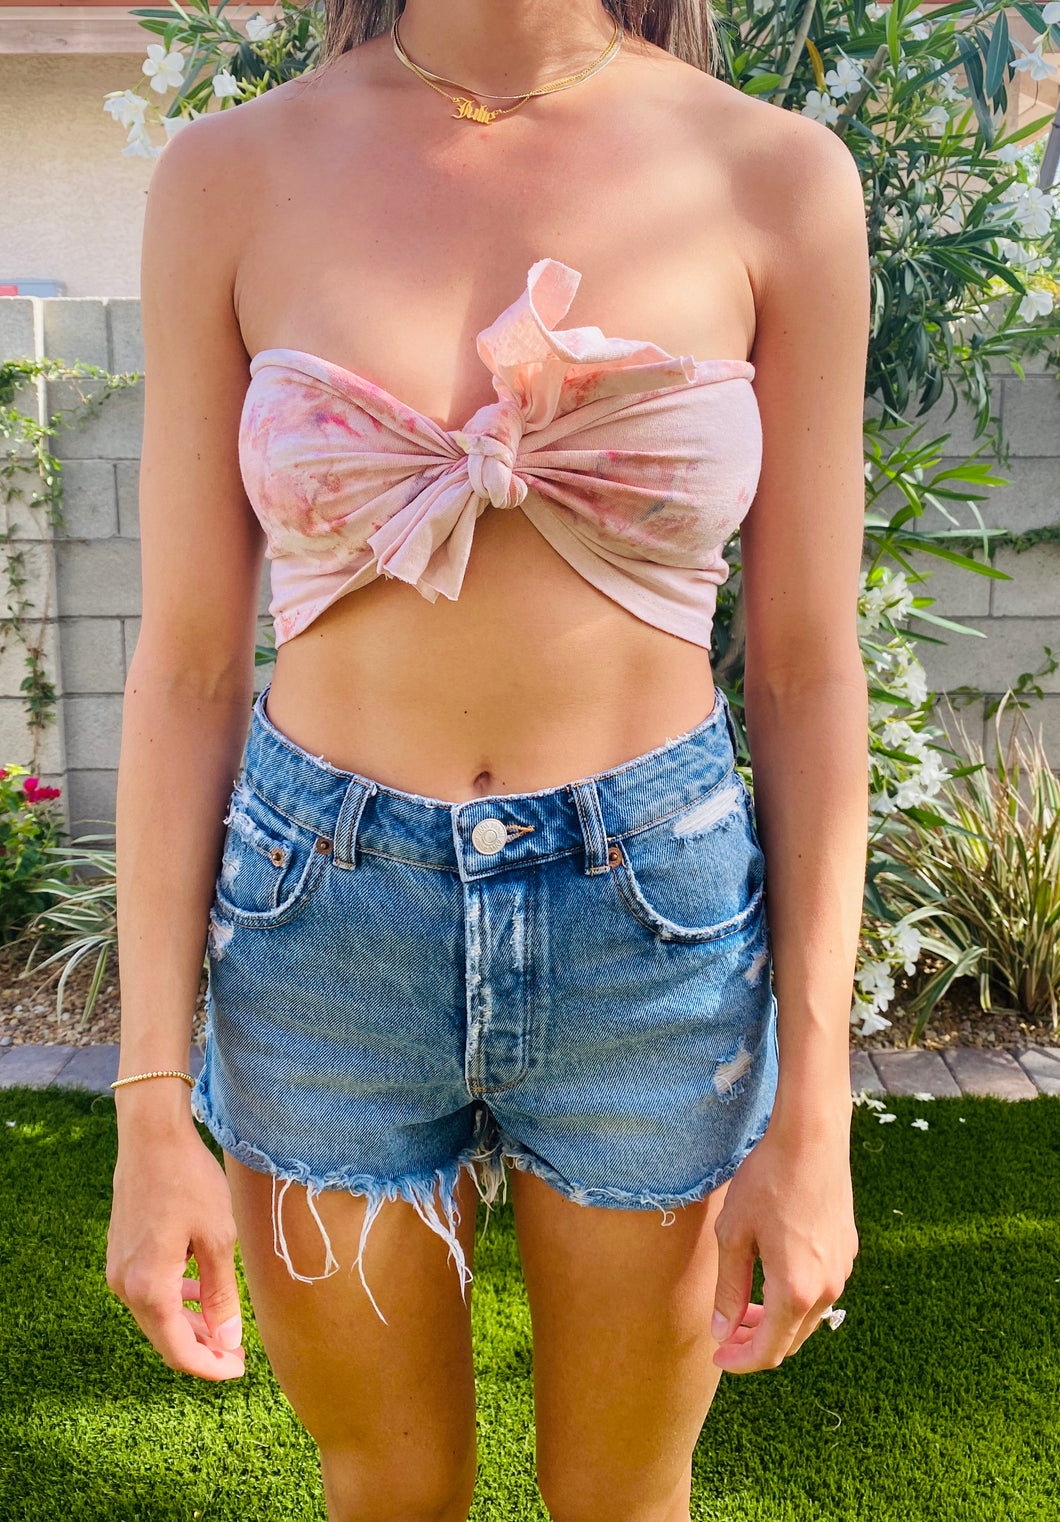 TWO-WAY TIE CROP TOP